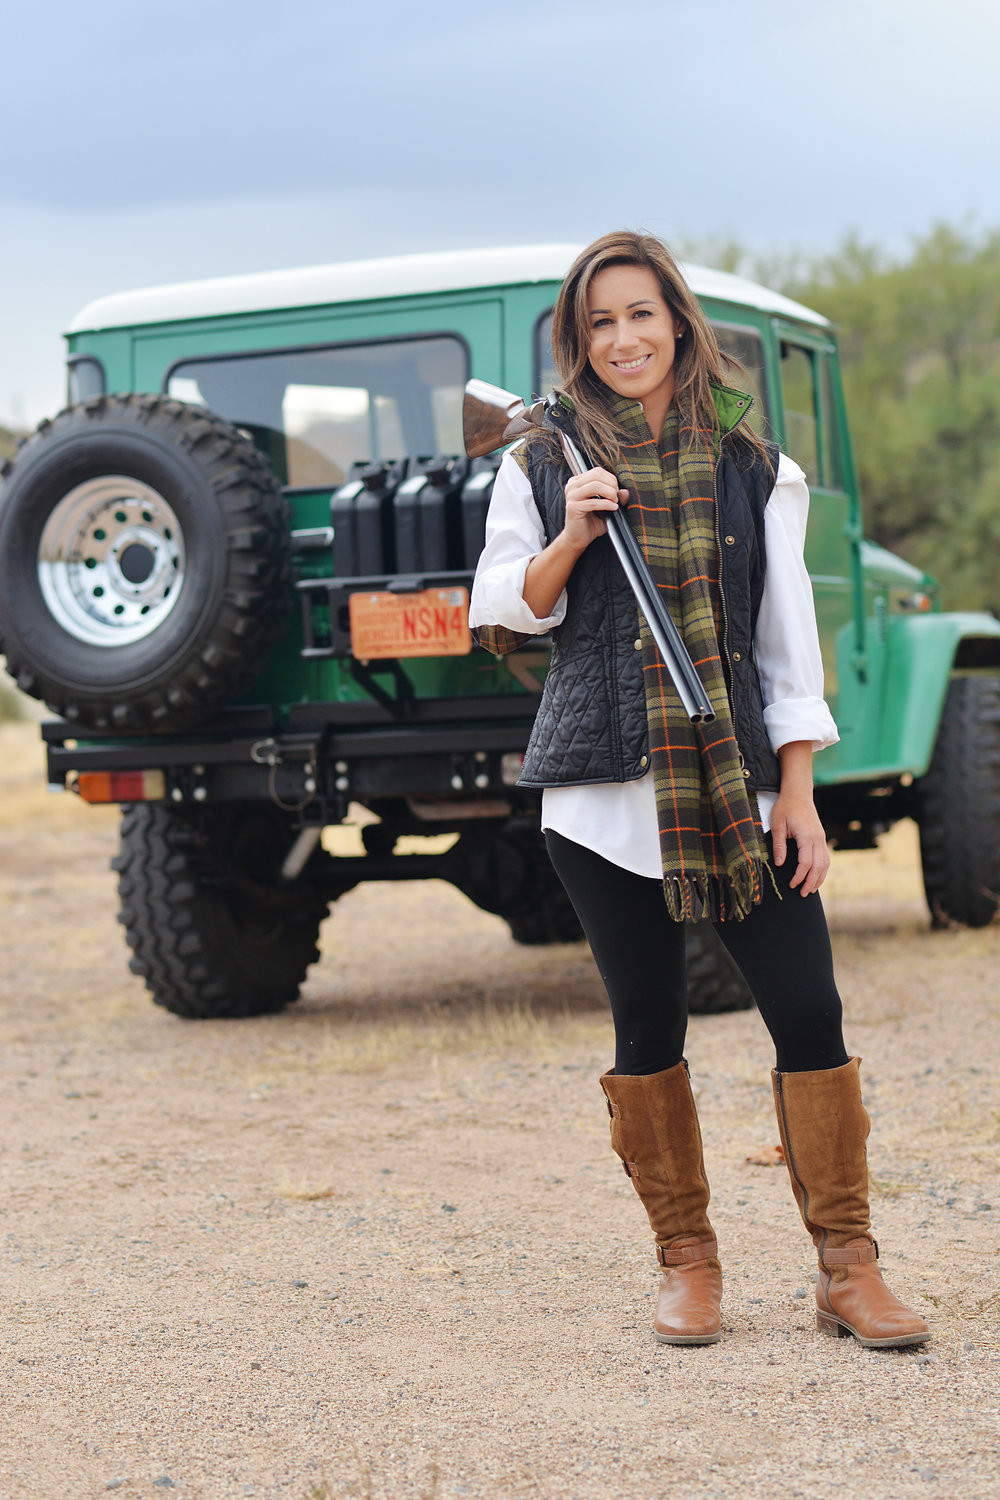 - Annie Johnston - NSCA Level I instructor, business operations, advocate of the sporting lifestyle and women's shooting